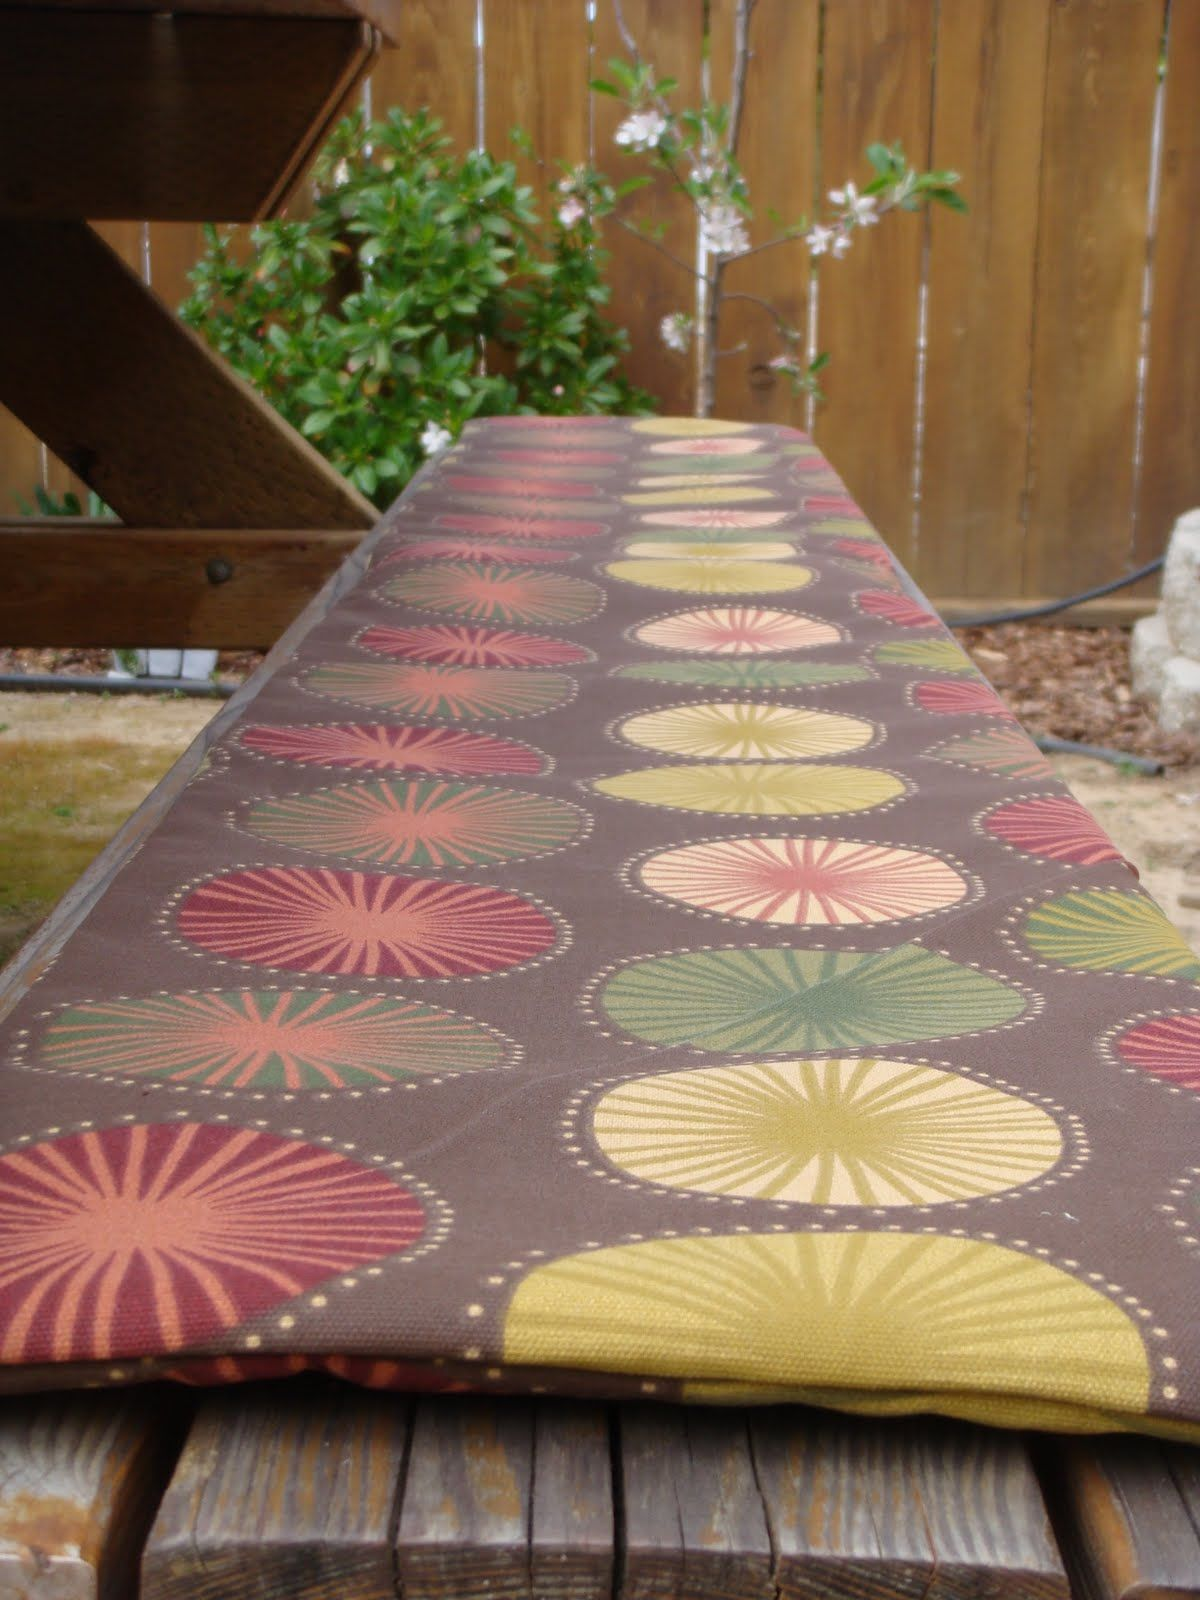 Swell Picnic Bench Seat Cover A Tutorial By Generationsue Grad Andrewgaddart Wooden Chair Designs For Living Room Andrewgaddartcom